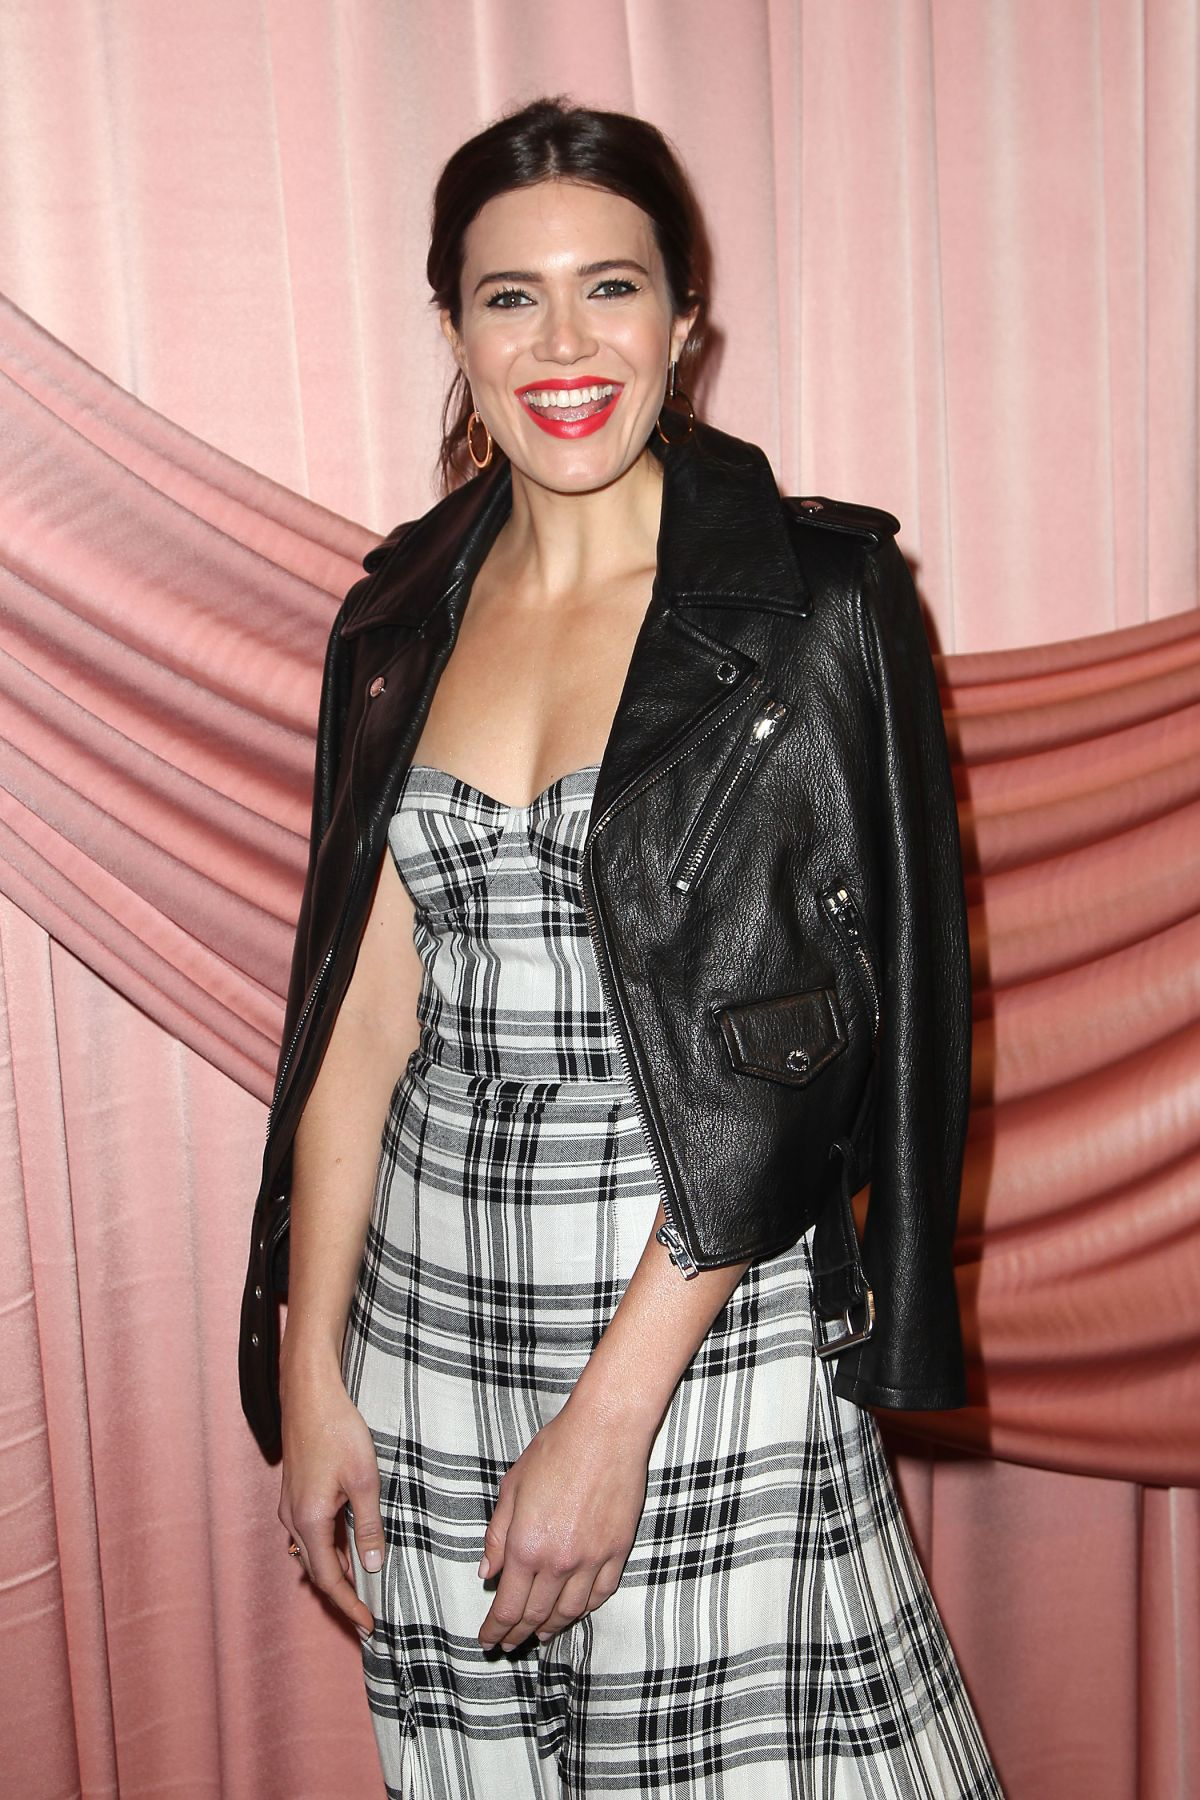 MANDY MOORE at Aice+Olivia by Stacey Bendet Presentation in New York 02/14/2017   mandy-moore-at-aice-olivia-by-stacey-bendet-presentation-in-new-york-02-14-2017_1